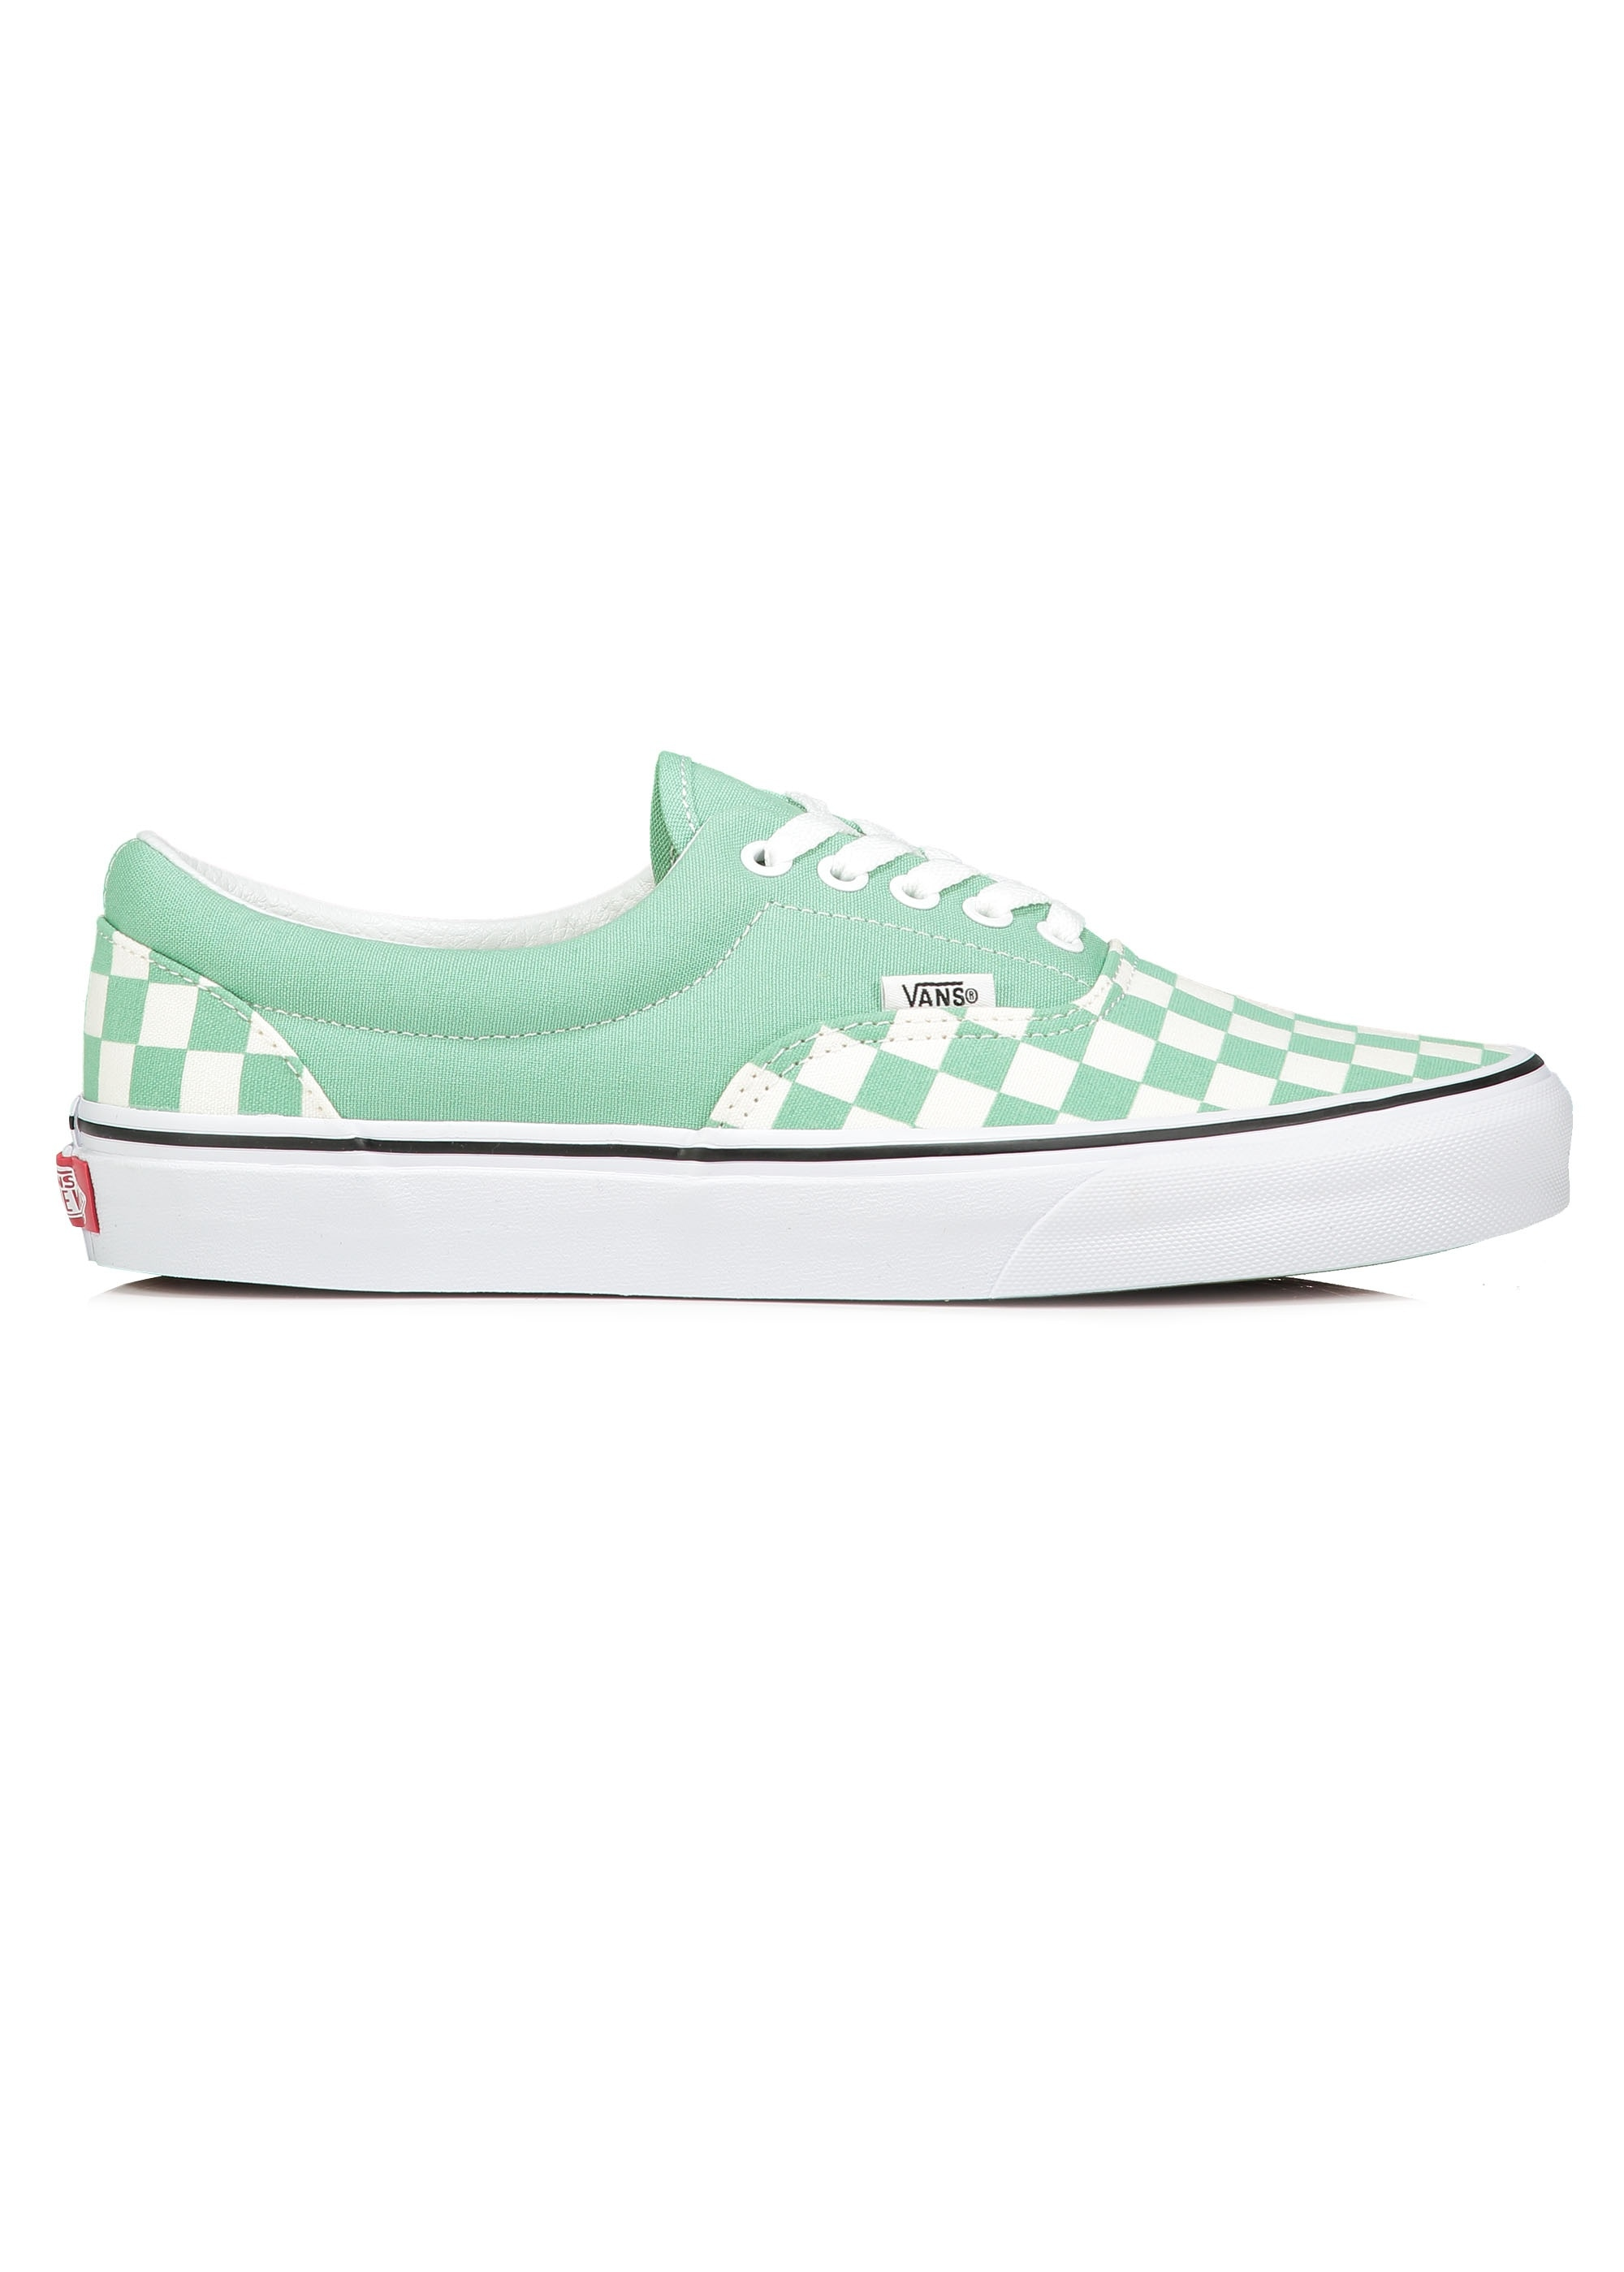 Vans Era Checkerboard - Neptune Green - Trainers from Triads UK 2d137b51a